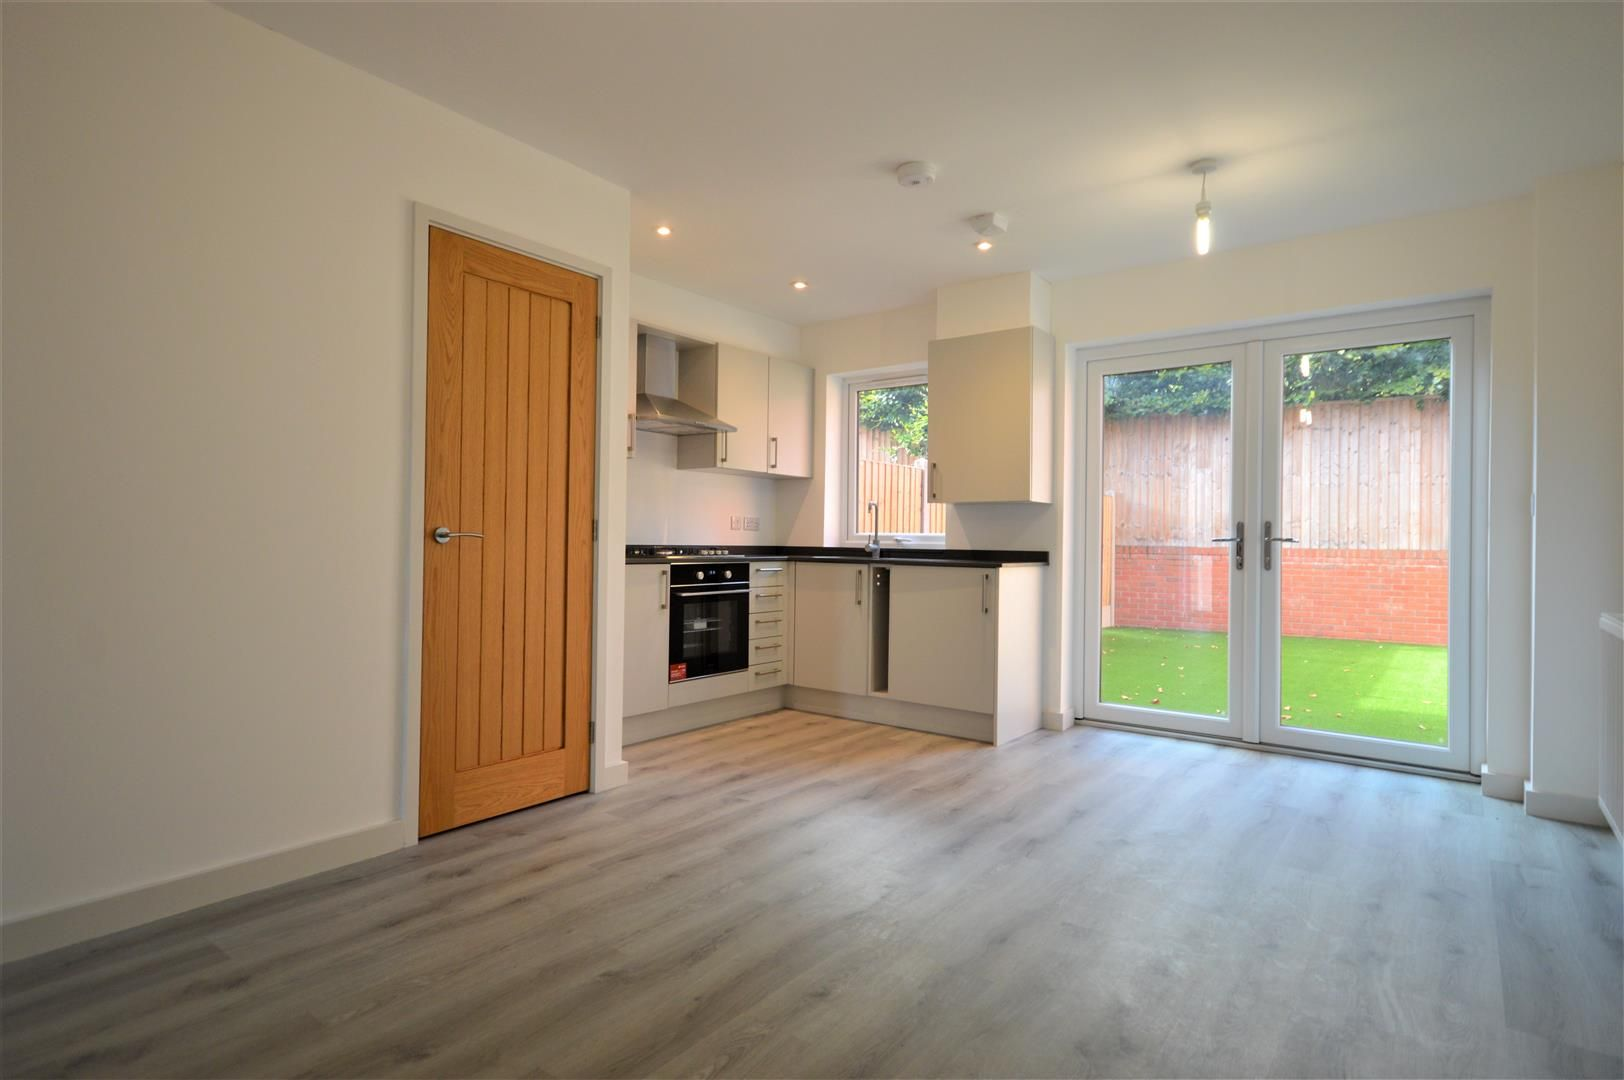 2 bed semi-detached for sale in Leominster  - Property Image 2